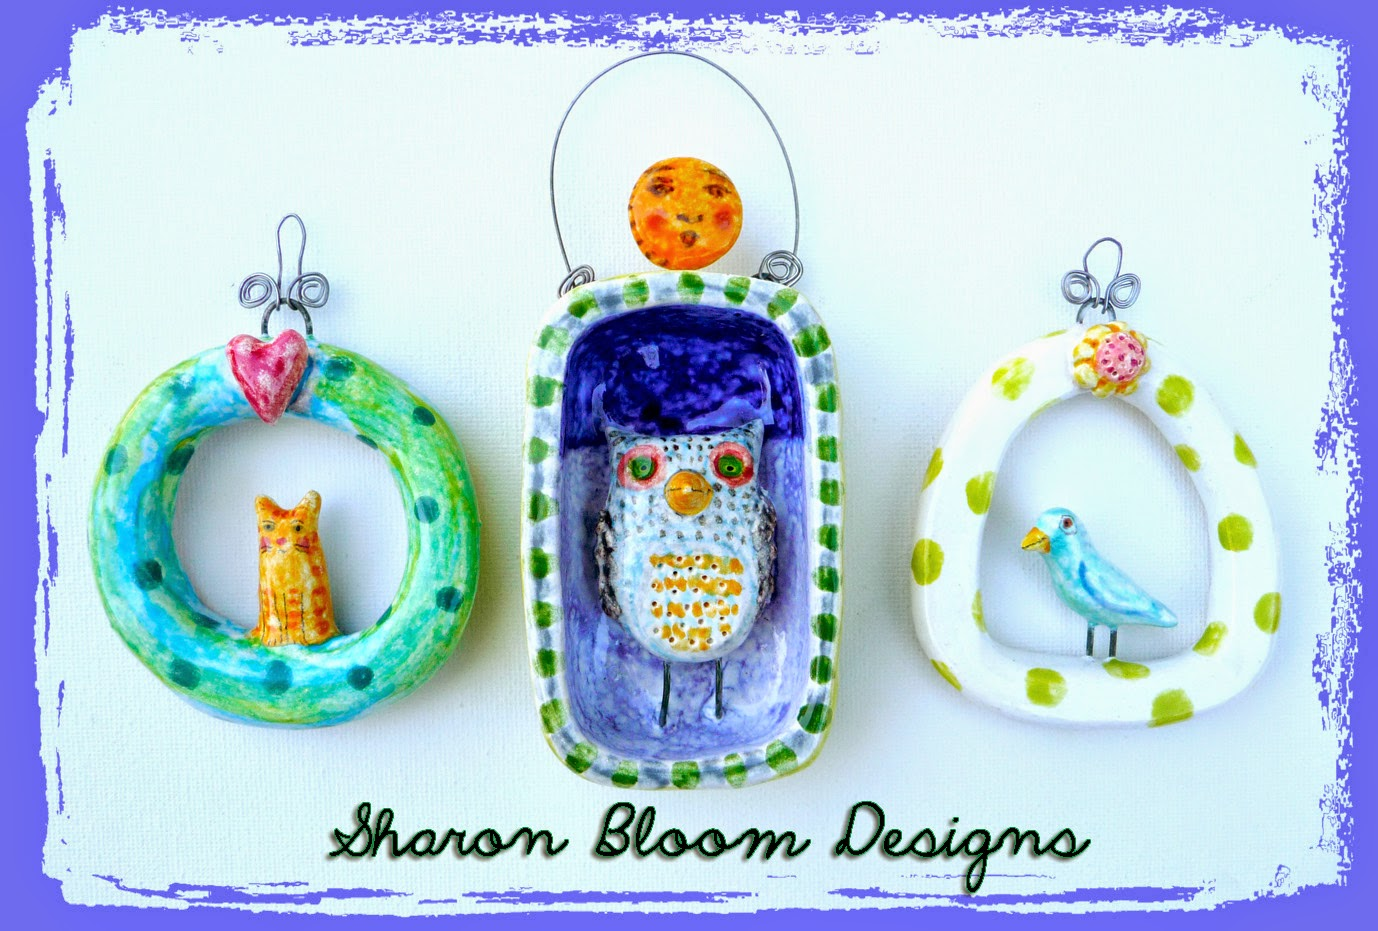 Sharon Bloom Designs Show At The Garden